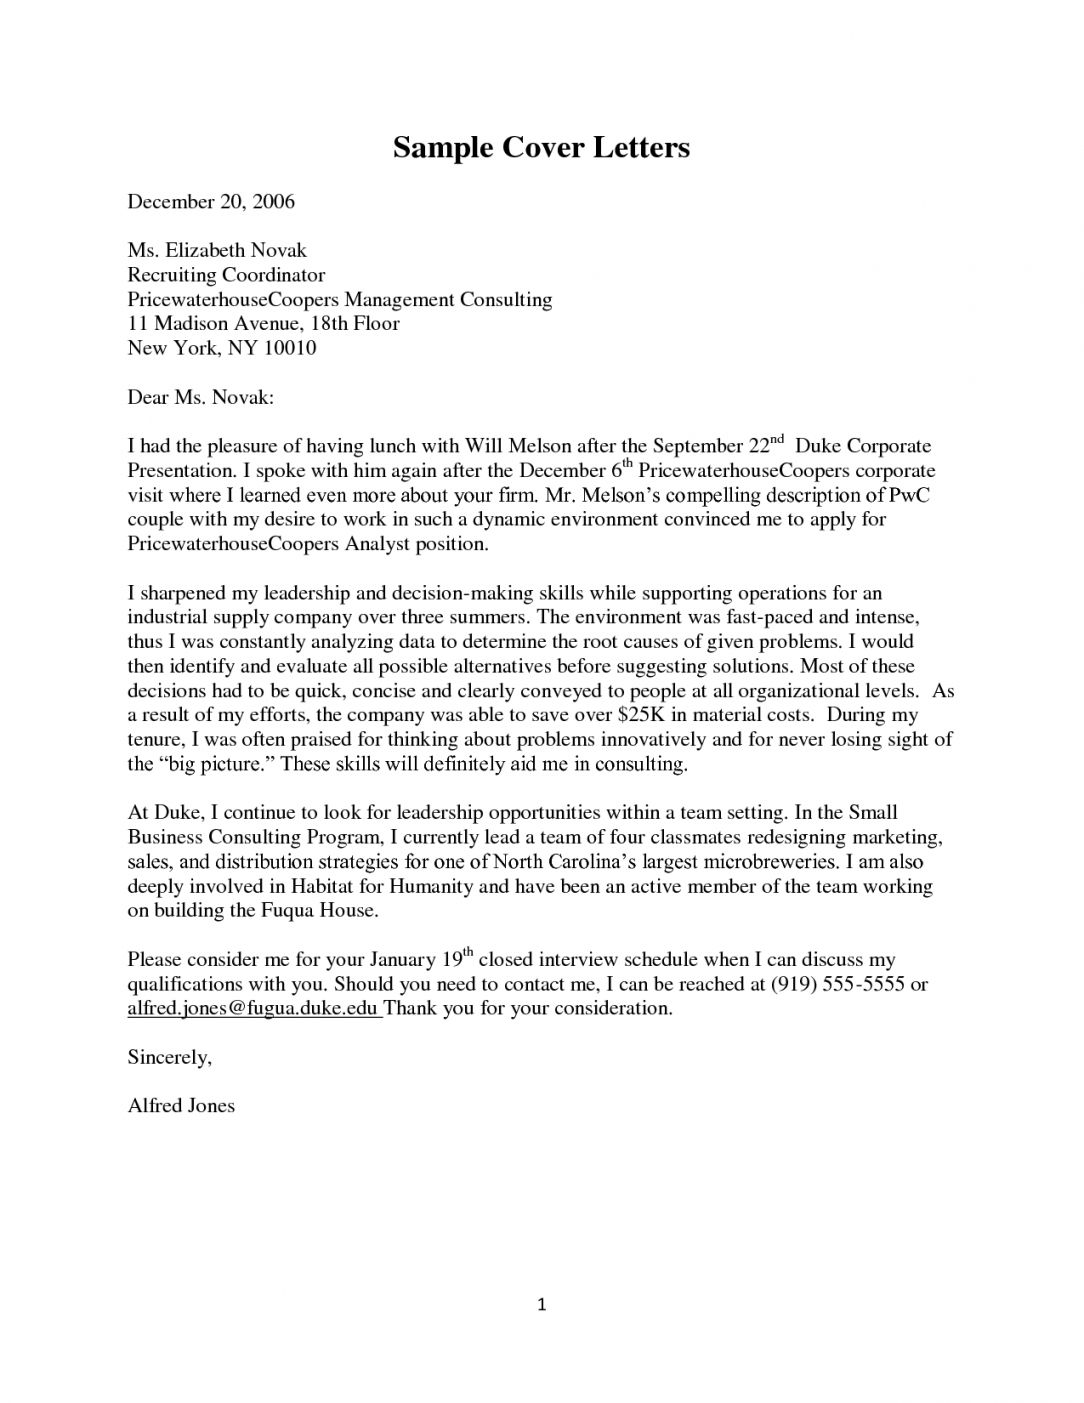 Sales Consultant Cover Letter Template Cover letter